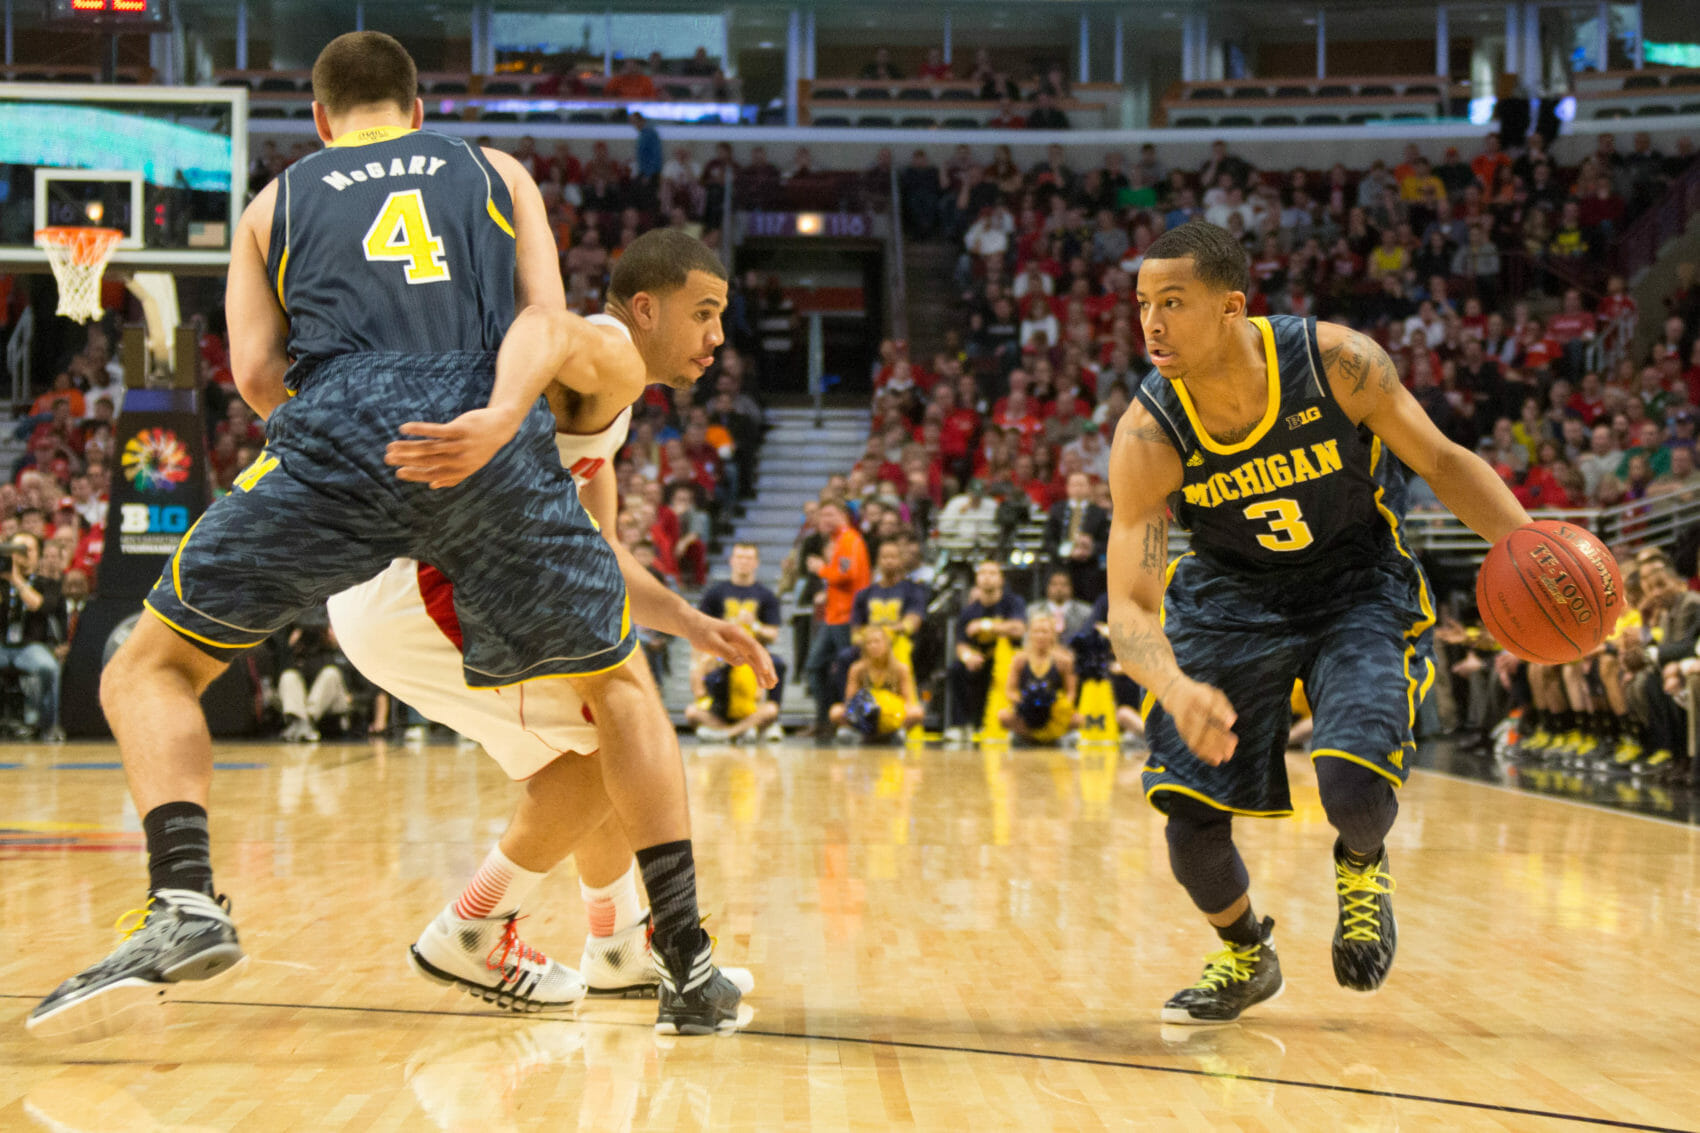 Wisconsin 68, Michigan 59-6